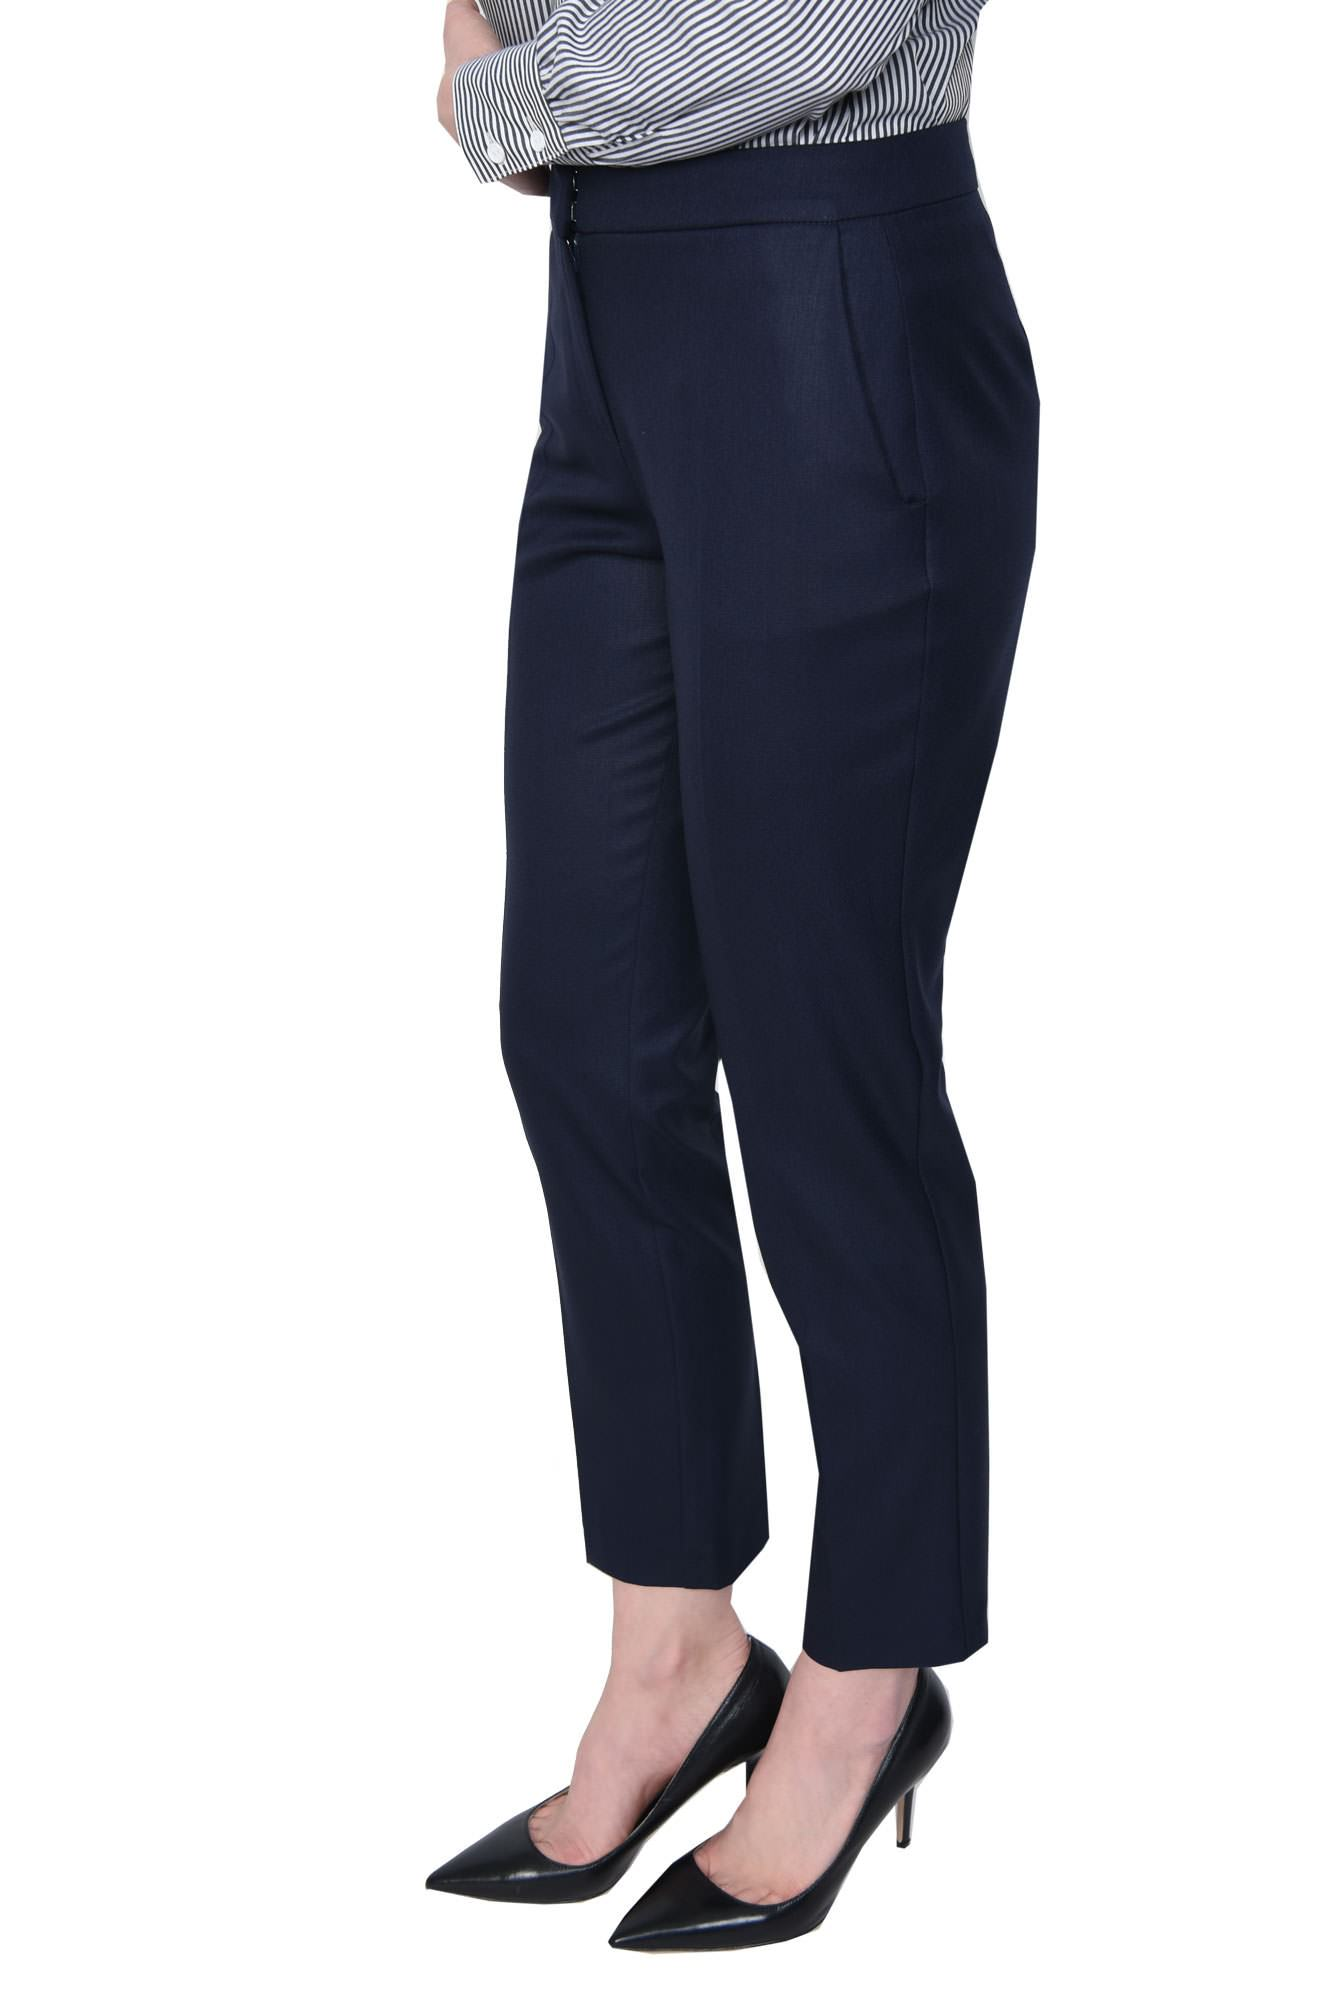 2 - PANTALON OFFICE CONIC PT 143-BLEUMARIN